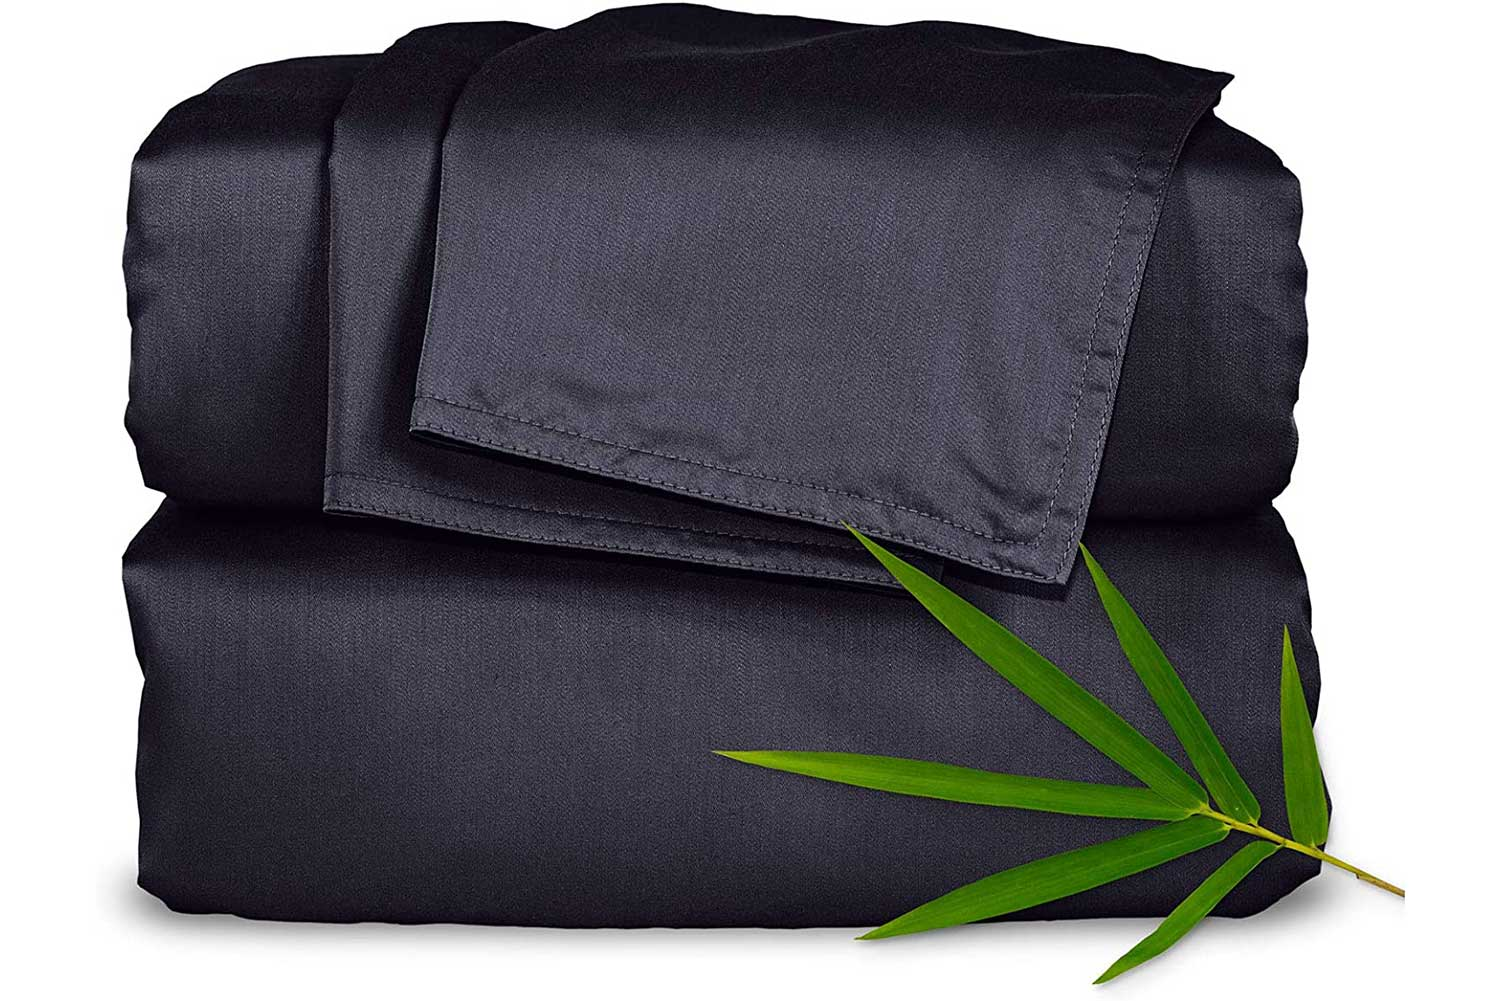 Pure Bamboo Sheets - King Size Bed Sheets 4pc Set - 100% Organic Bamboo - Incredibly Soft - Fits Up to 16